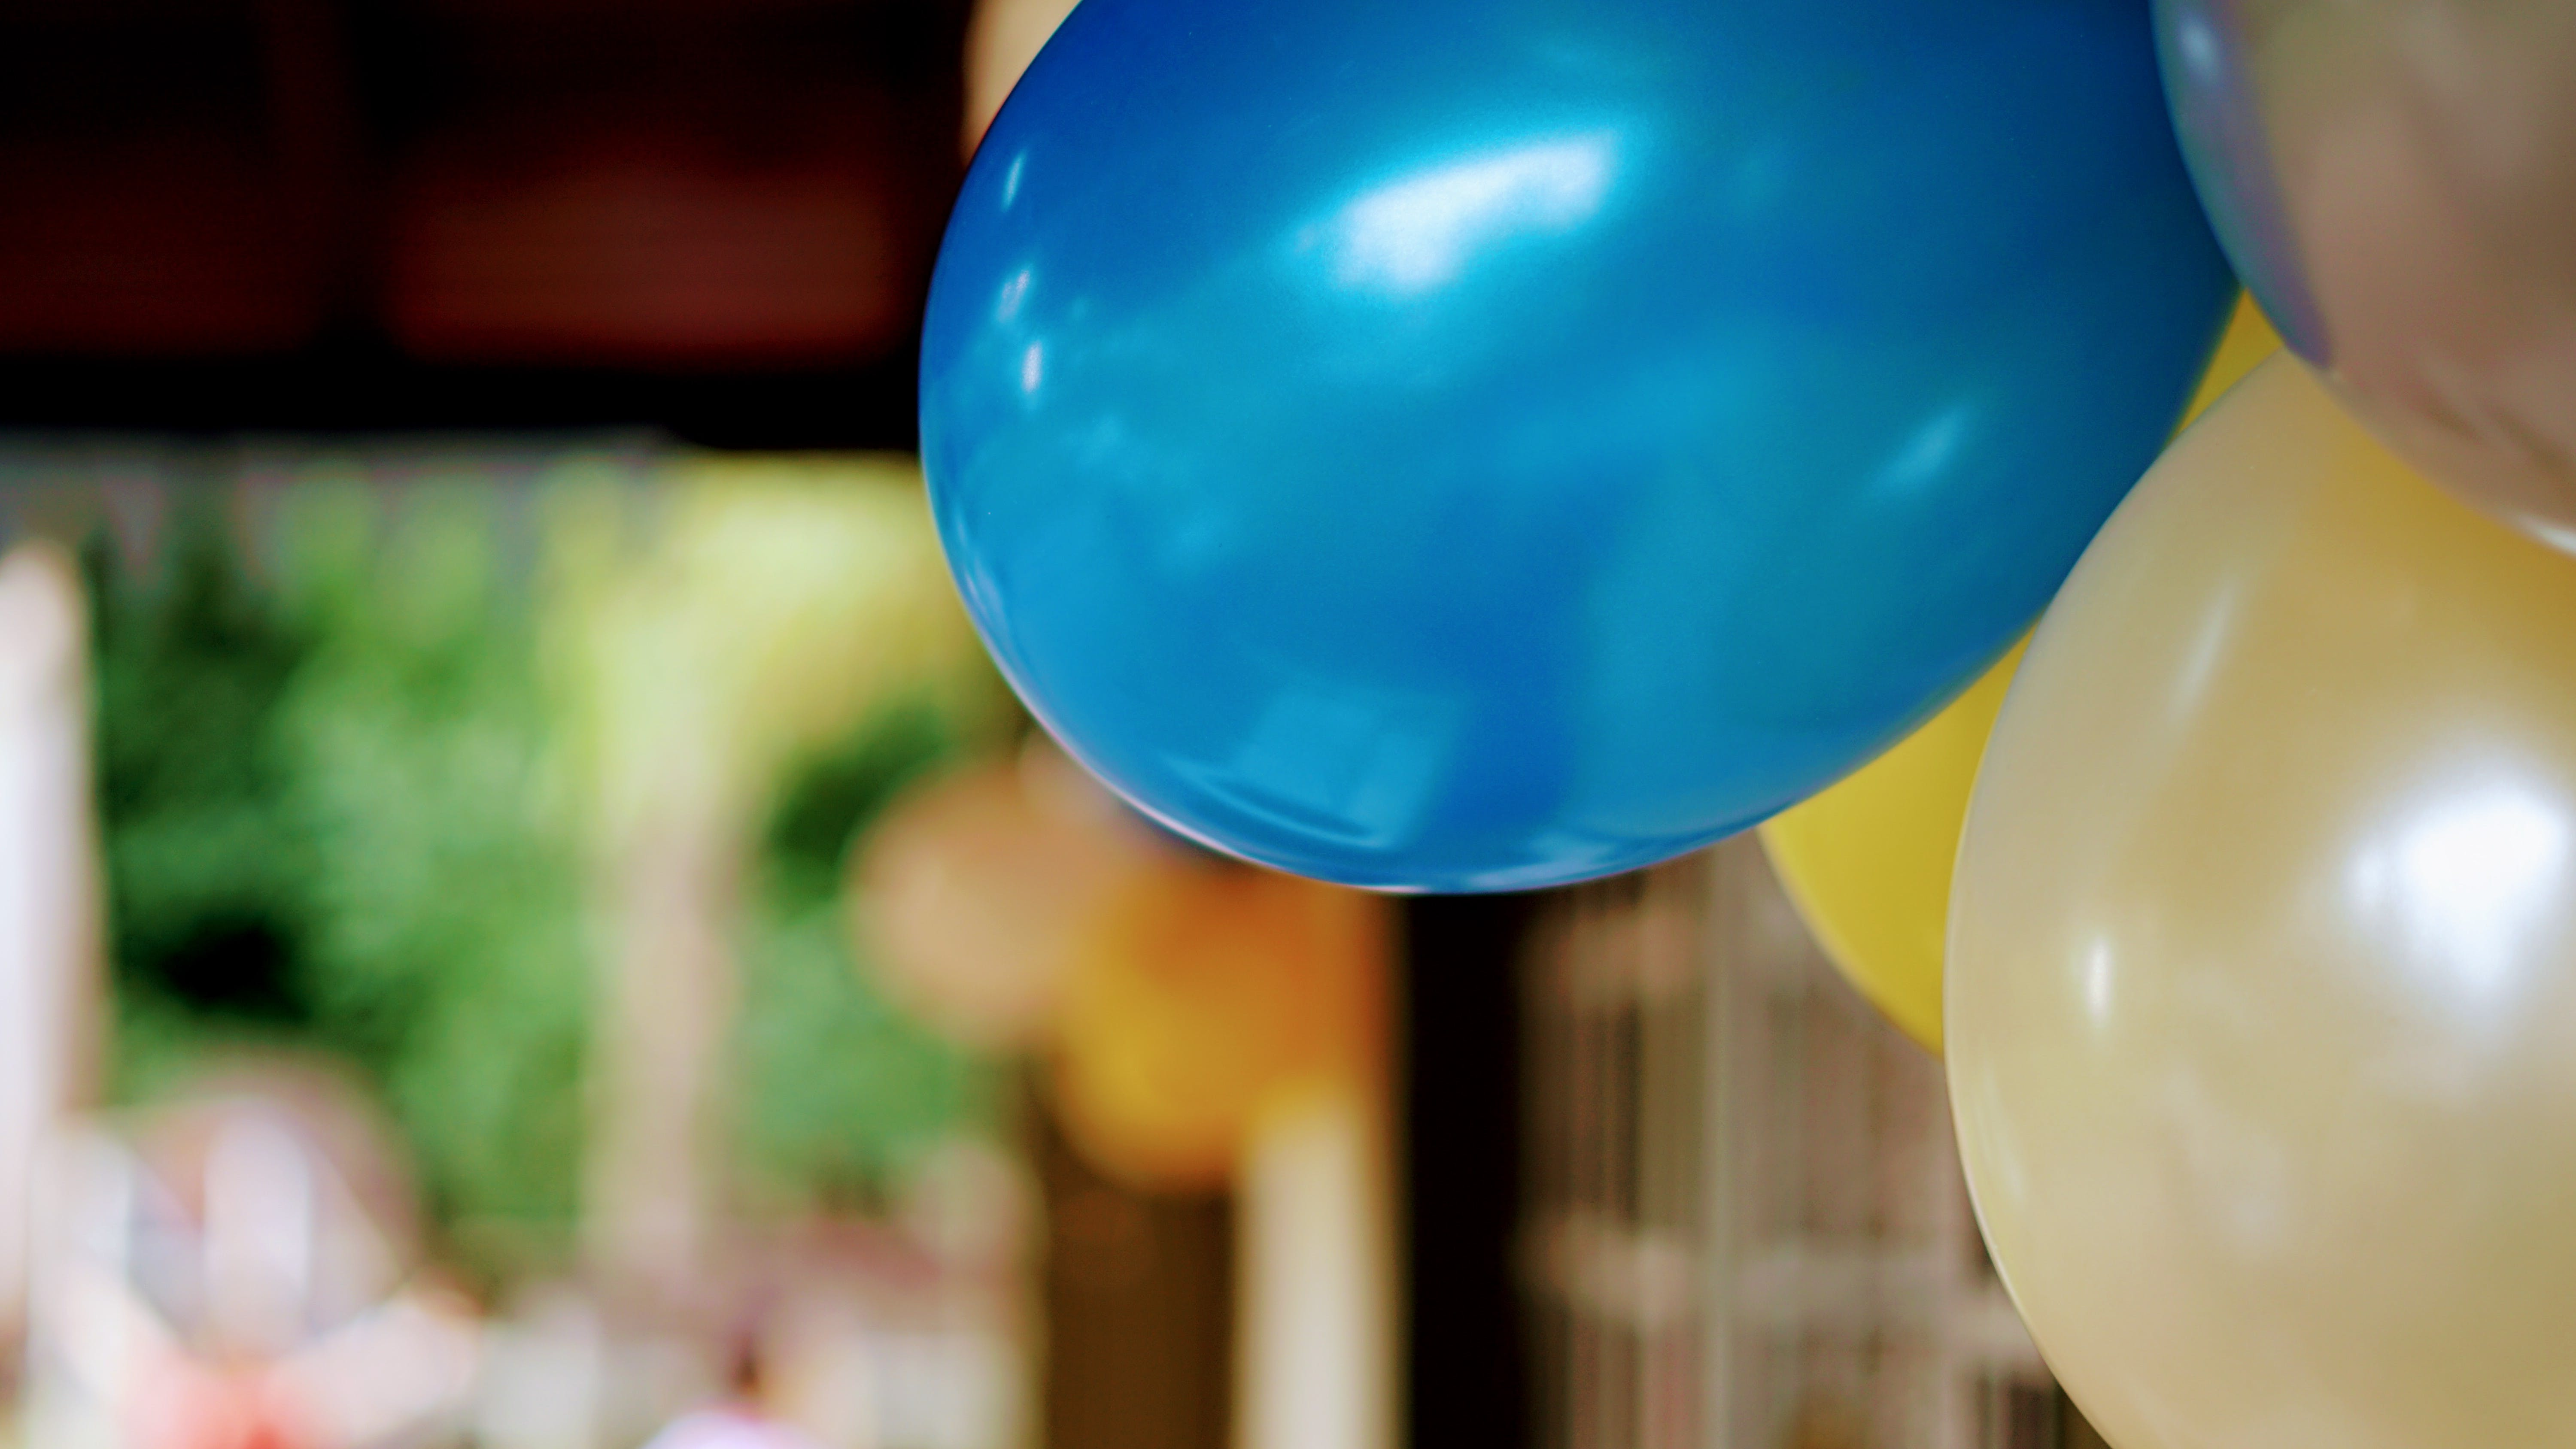 Blue and Yellow Balloons